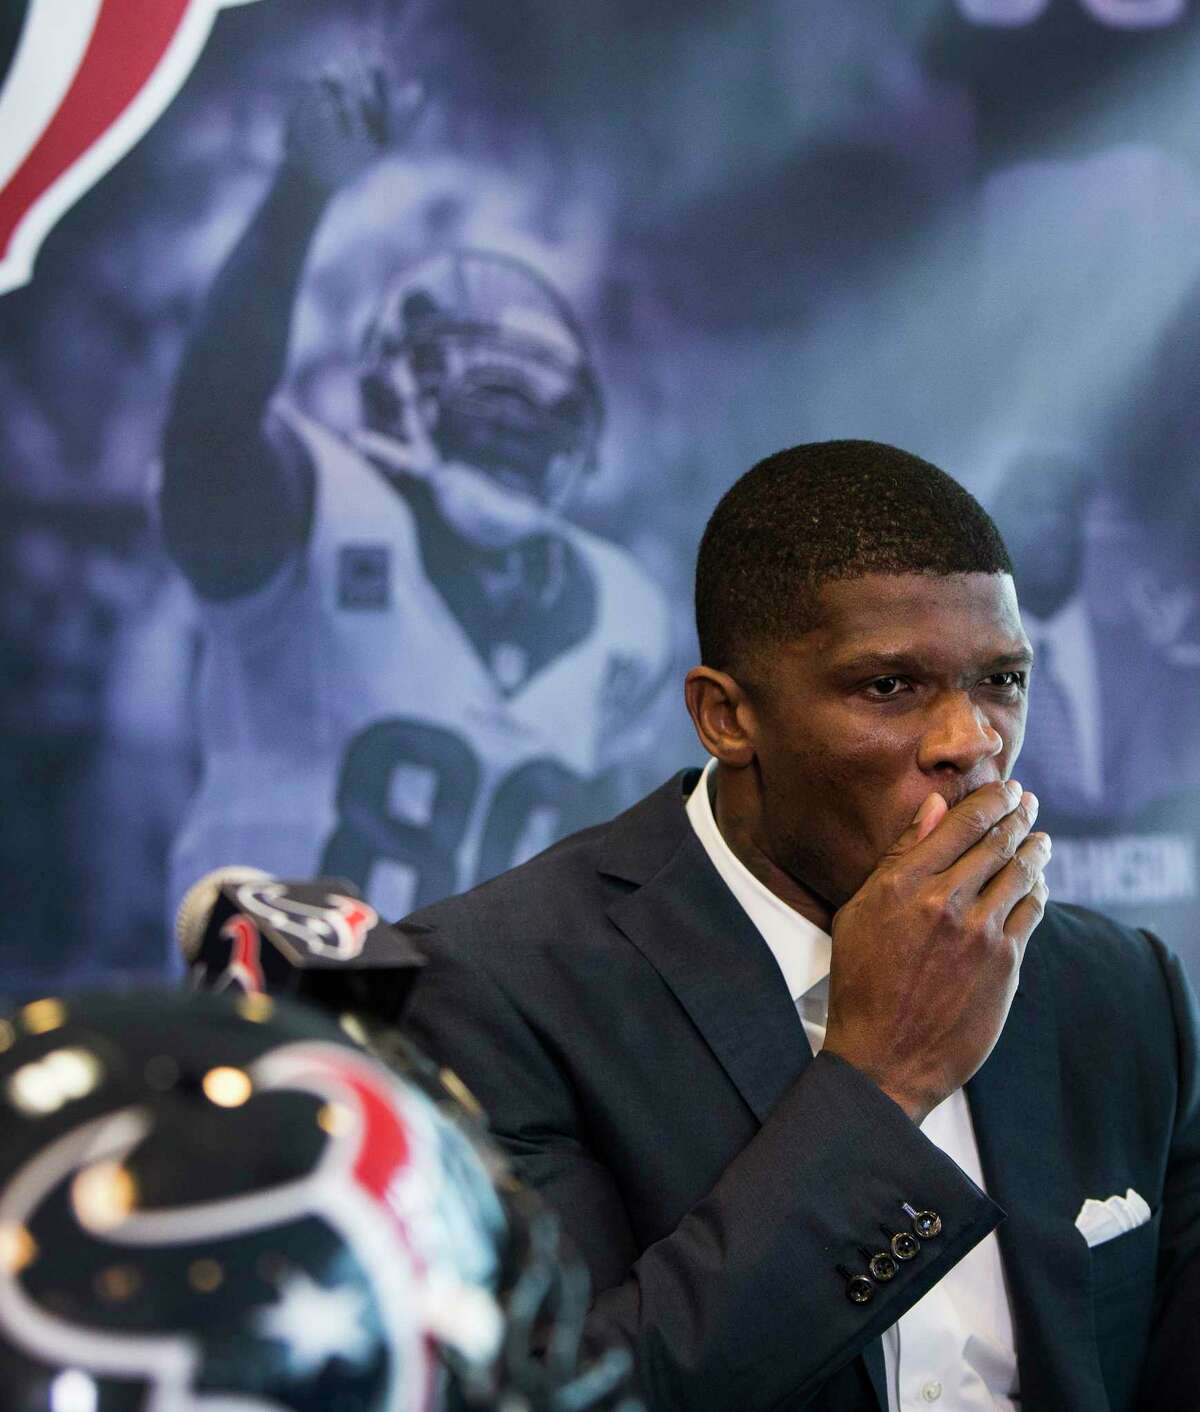 Former Houston Texans wide receiver Andre Johnson pauses as he speaks during a retirement ceremony at NRG Stadium on Wednesday, April 19, 2017, in Houston. Johnson signed a one-day contract to retire as a Texans player.